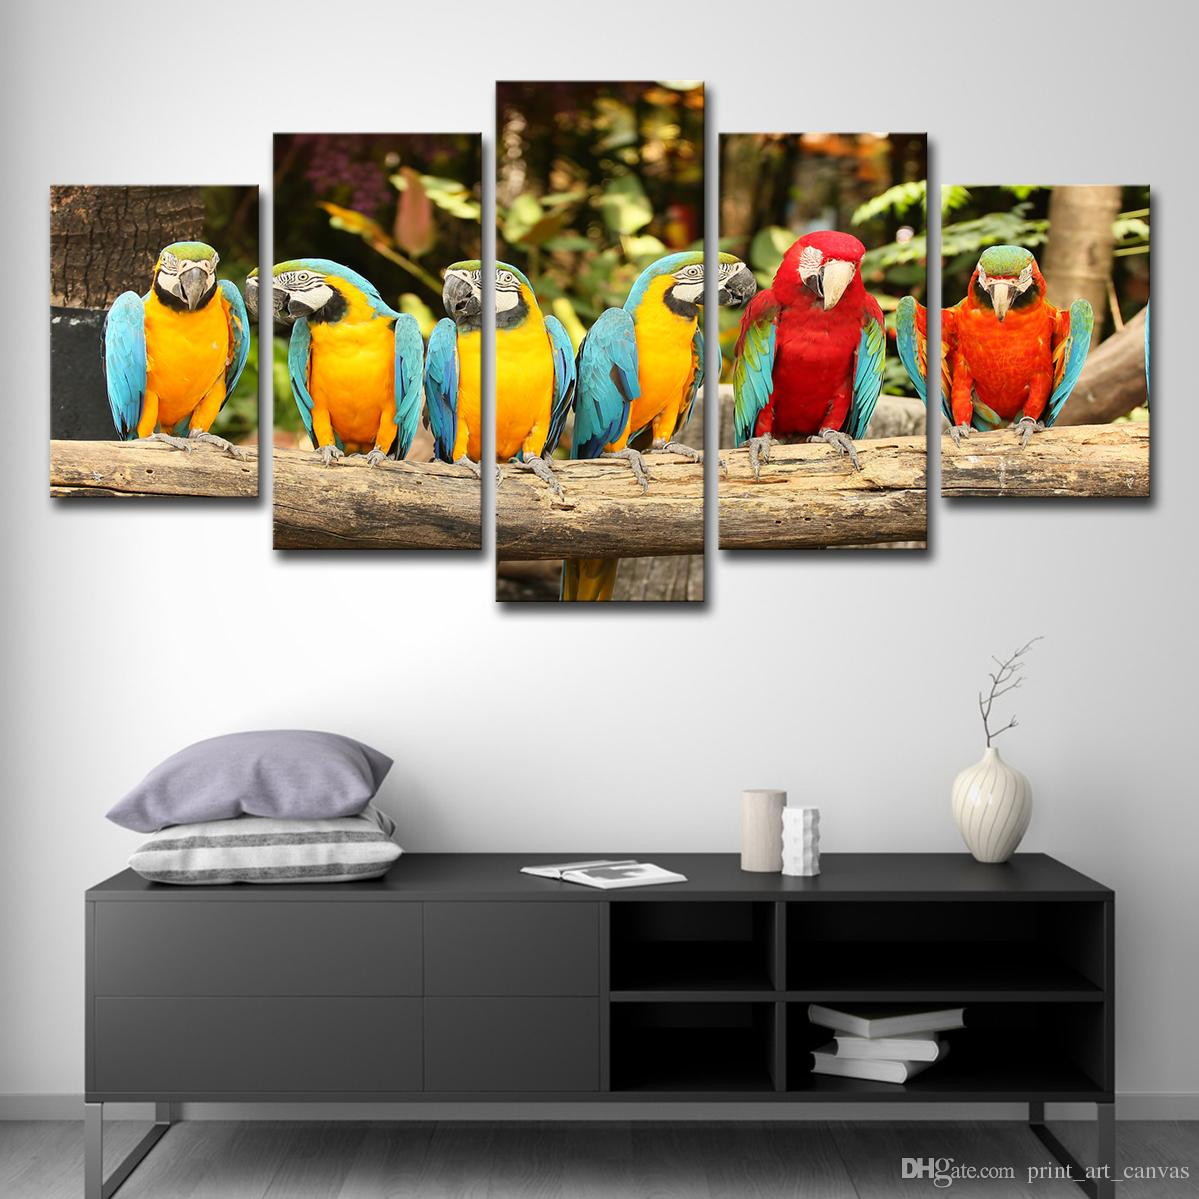 Canvas Paintings Wall Art Home Decor Living Room HD Printed 5 Pieces Parrot Group Poster Feather Colorful Birds Pictures